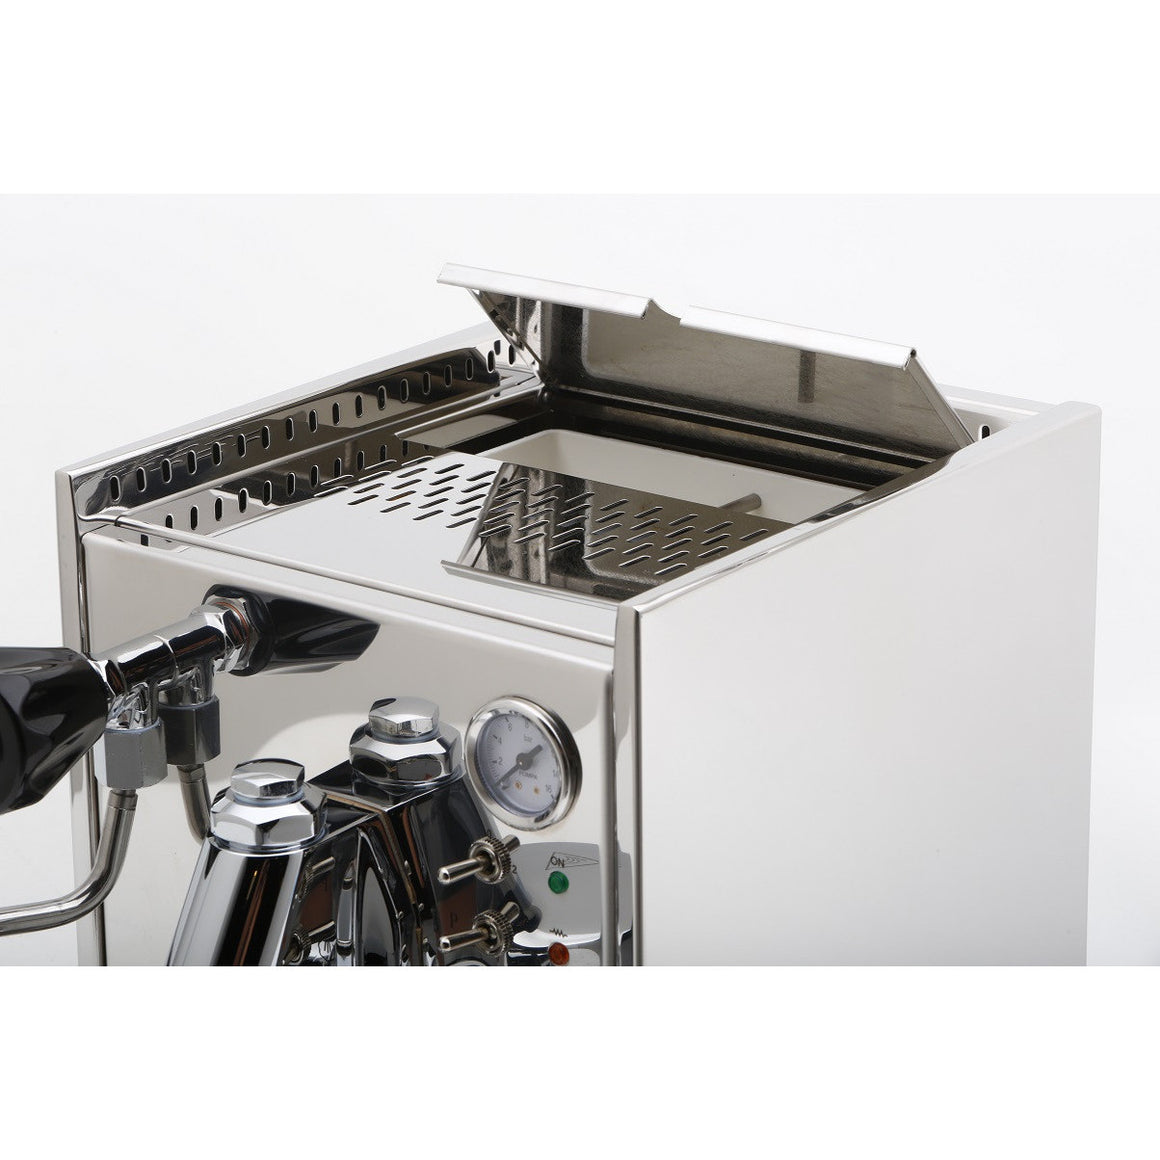 QUICK MILL ALEXIA EVO ESPRESSO MACHINE - My Espresso Shop - 6